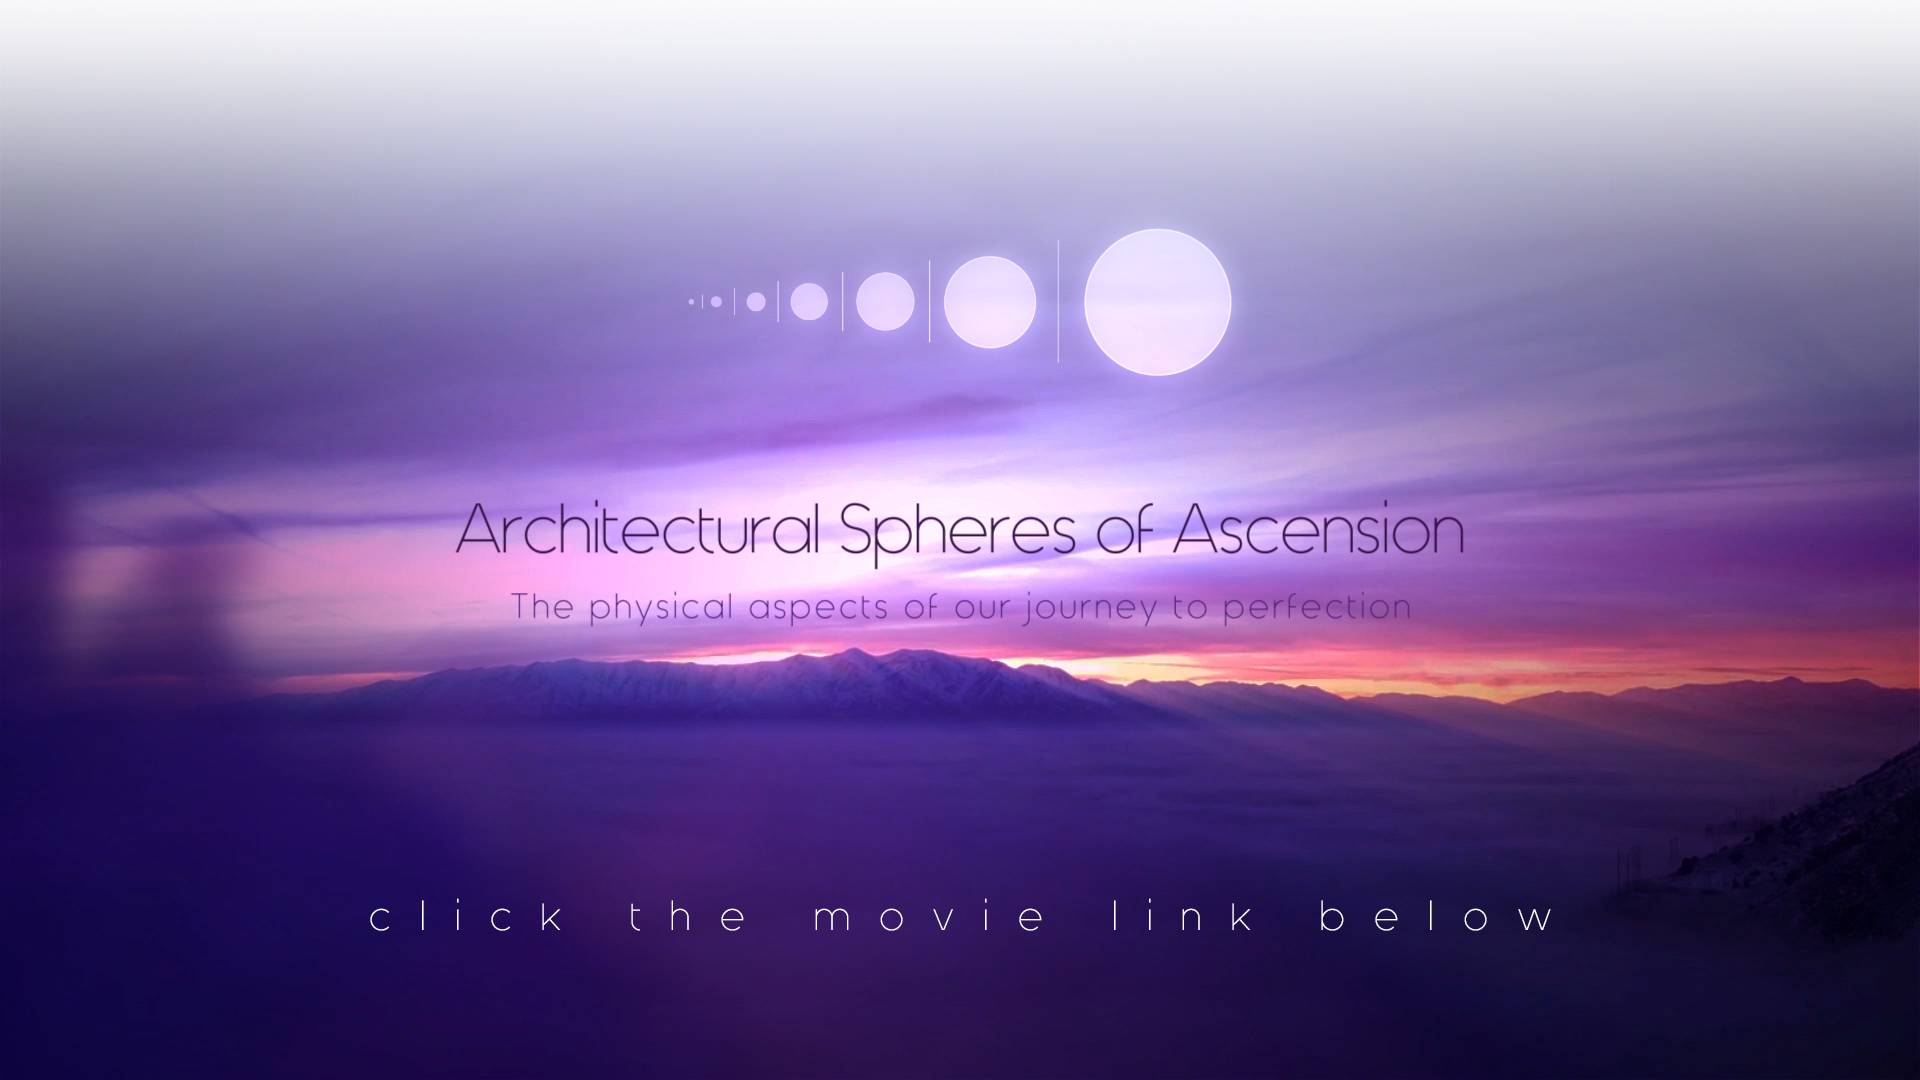 MOVIE - Architectural Spheres of Ascension by ANTIFAN-REAL